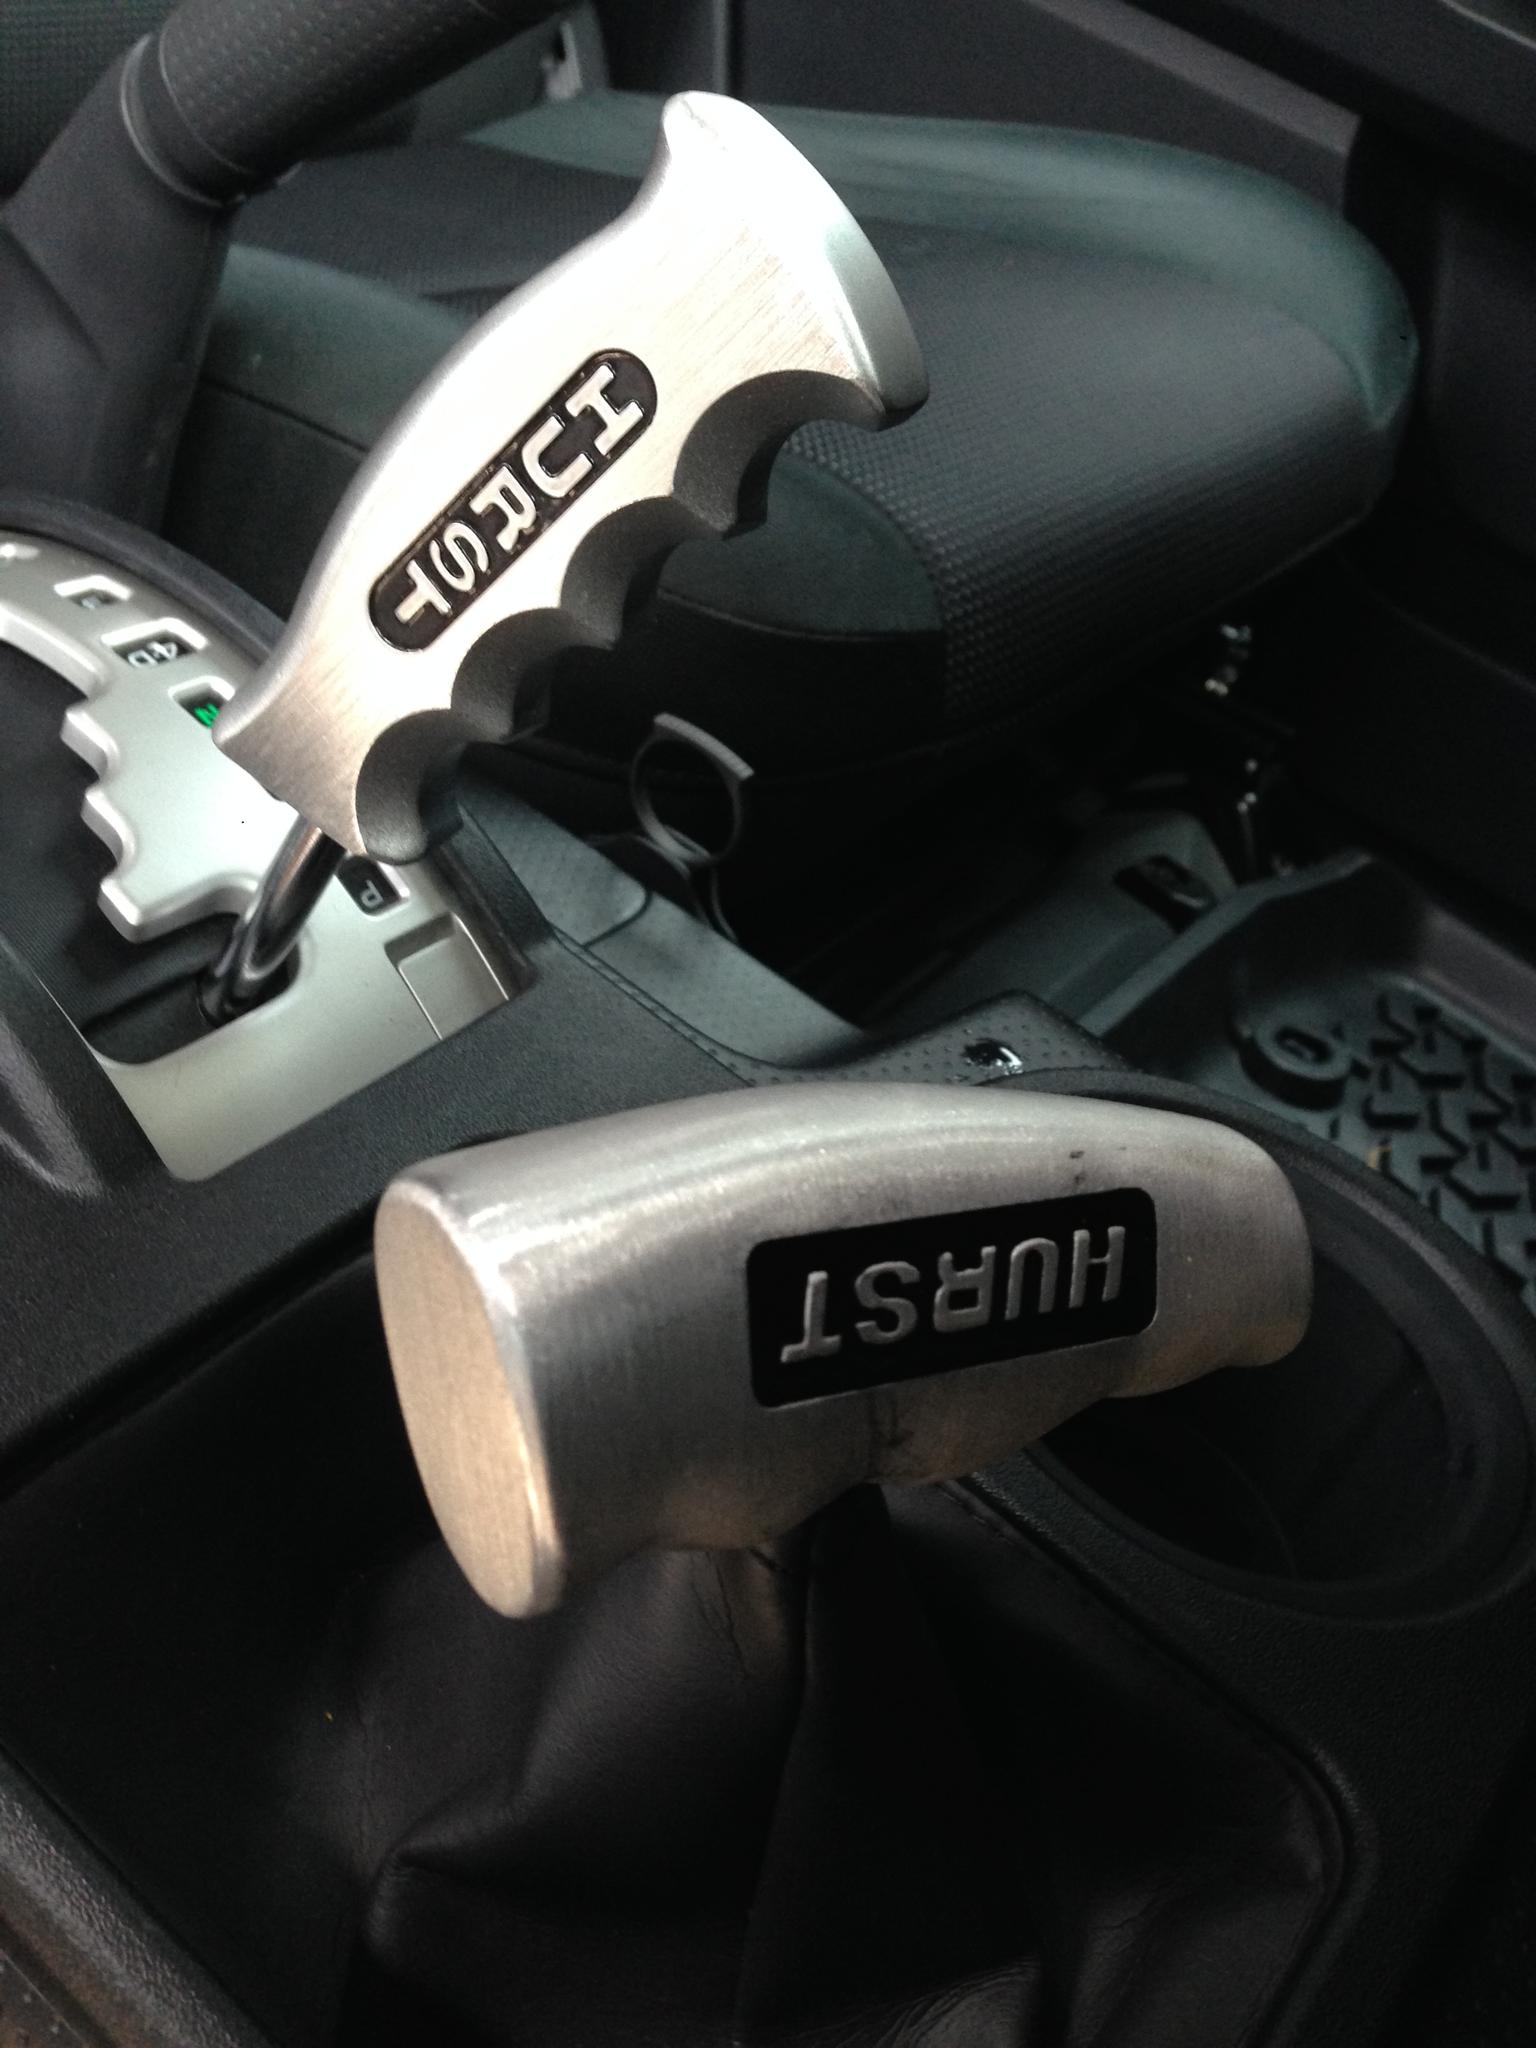 Lets see them custom SHIFT KNOBS Page 3 Toyota FJ Cruiser Forum